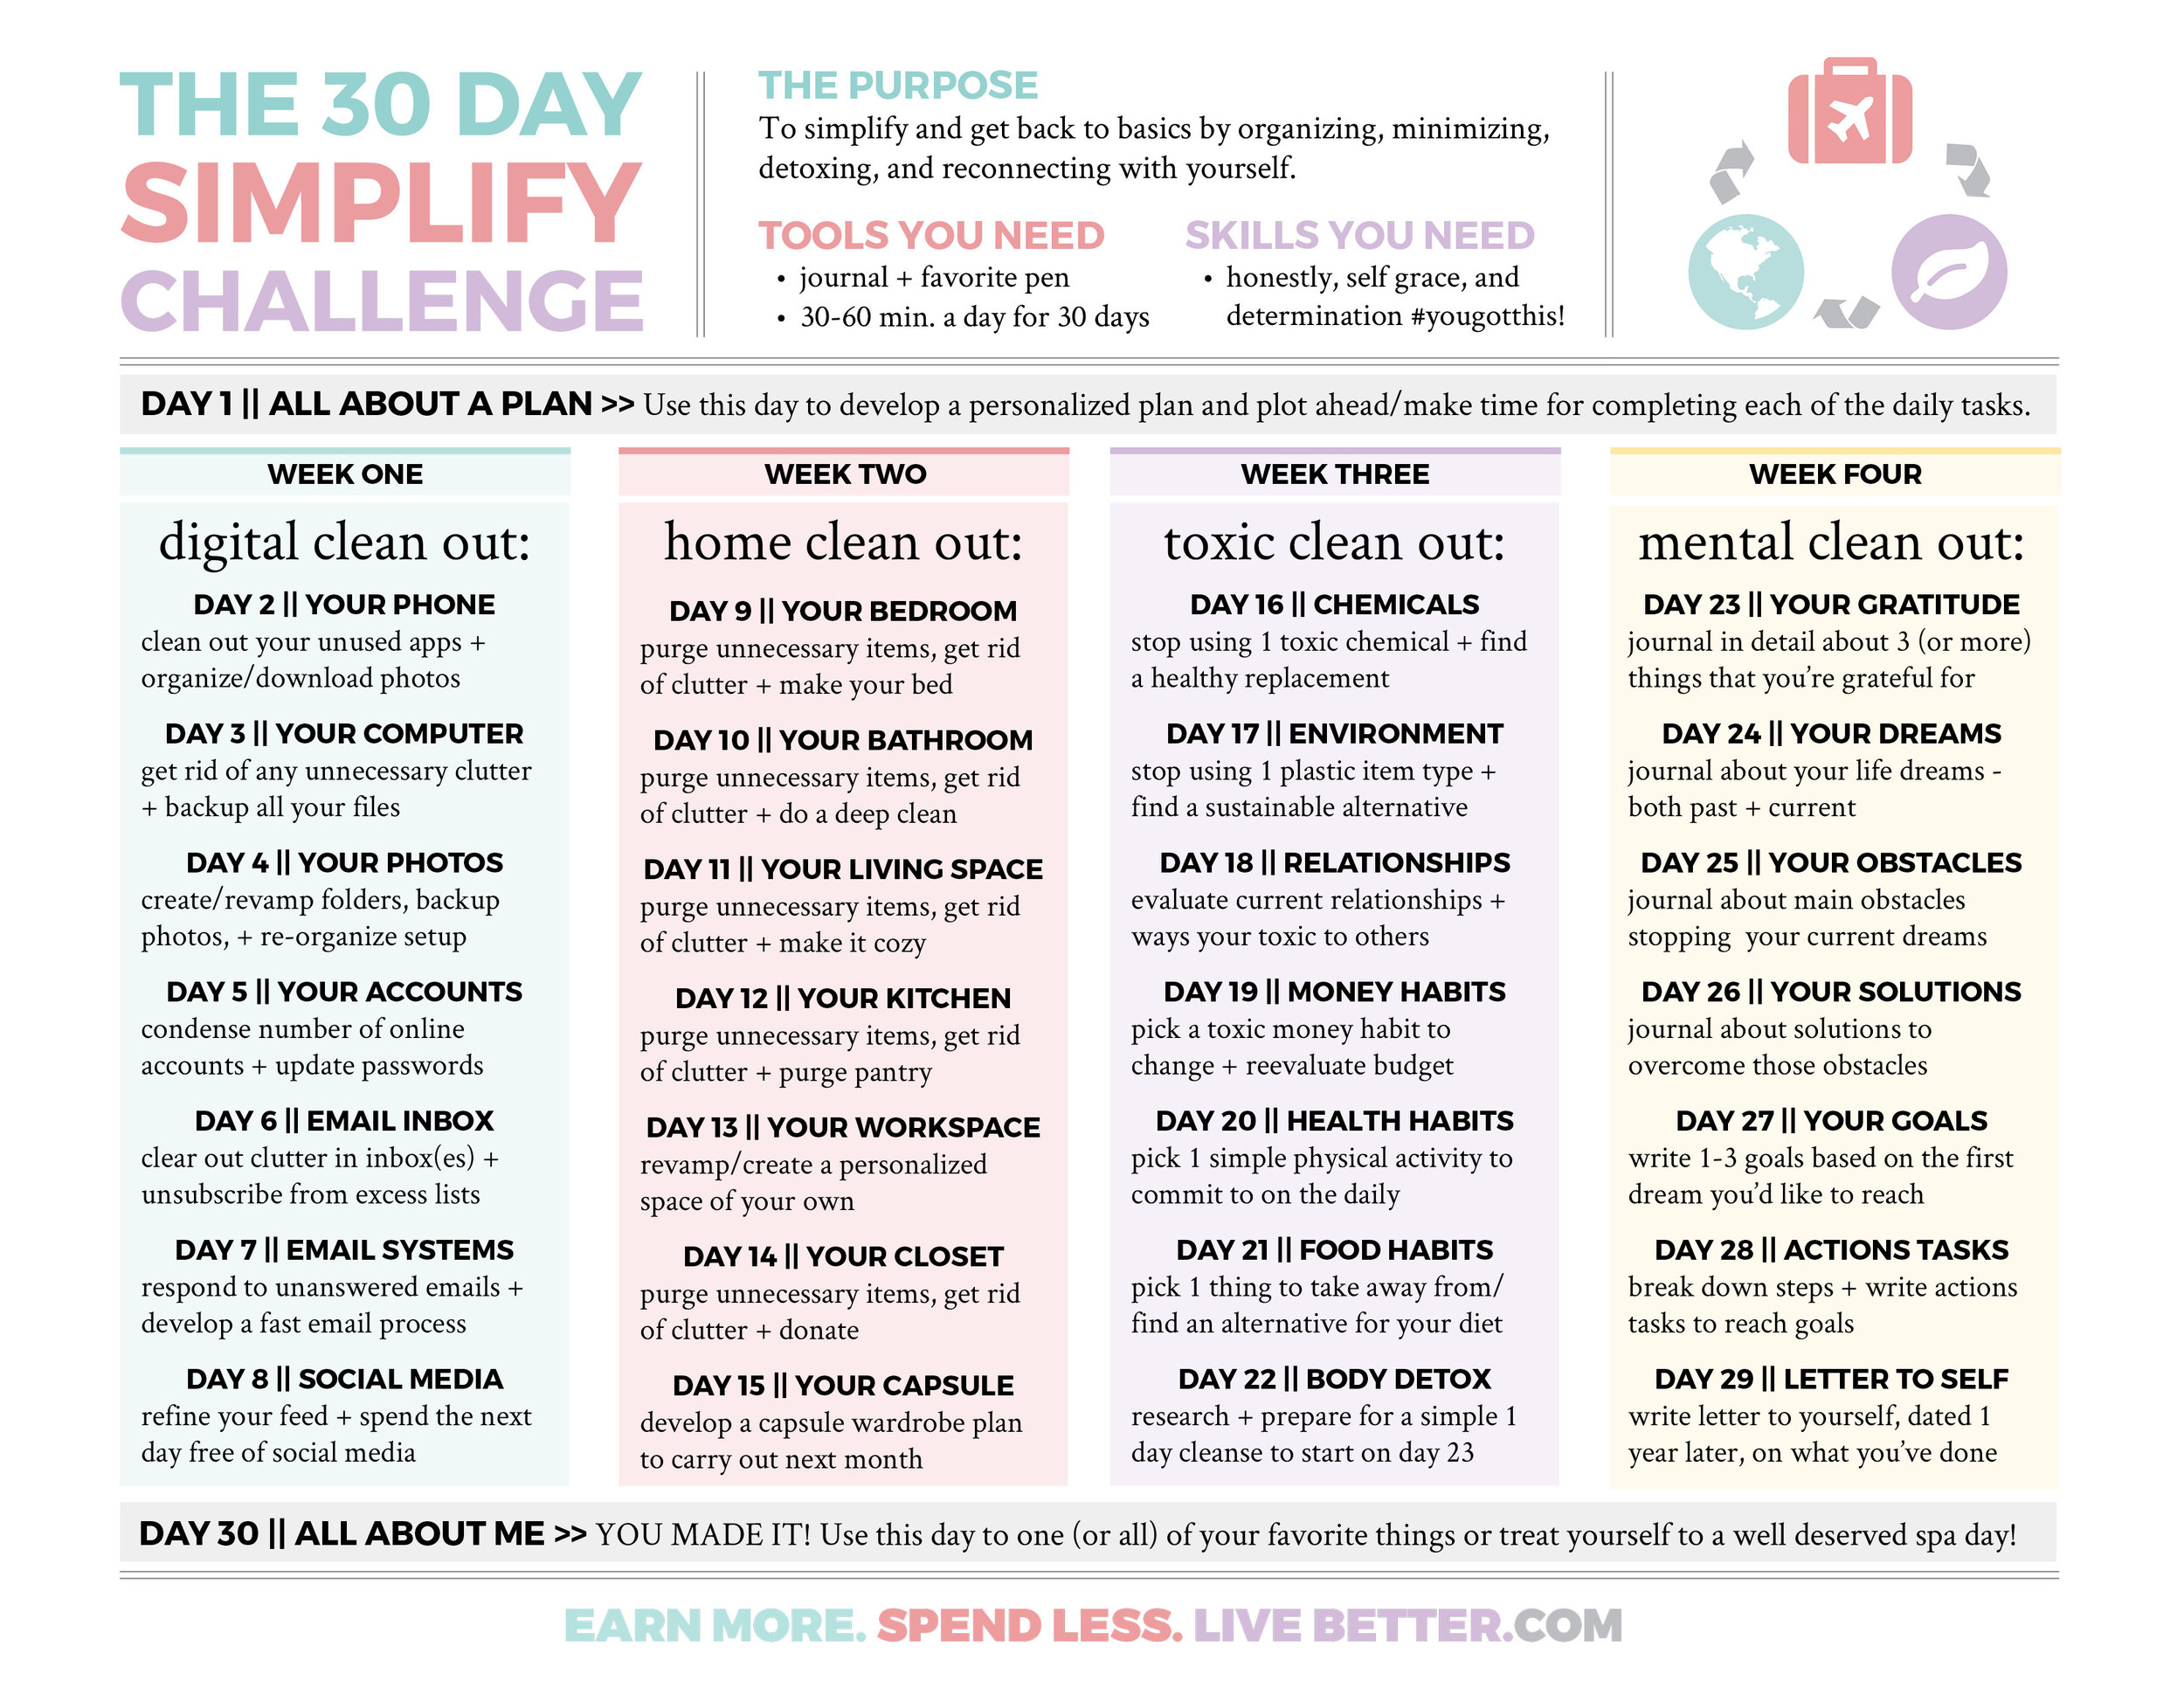 The 30 Day Simplify Challenge || Earn More Spend Less Live Better via Yuri Gibson